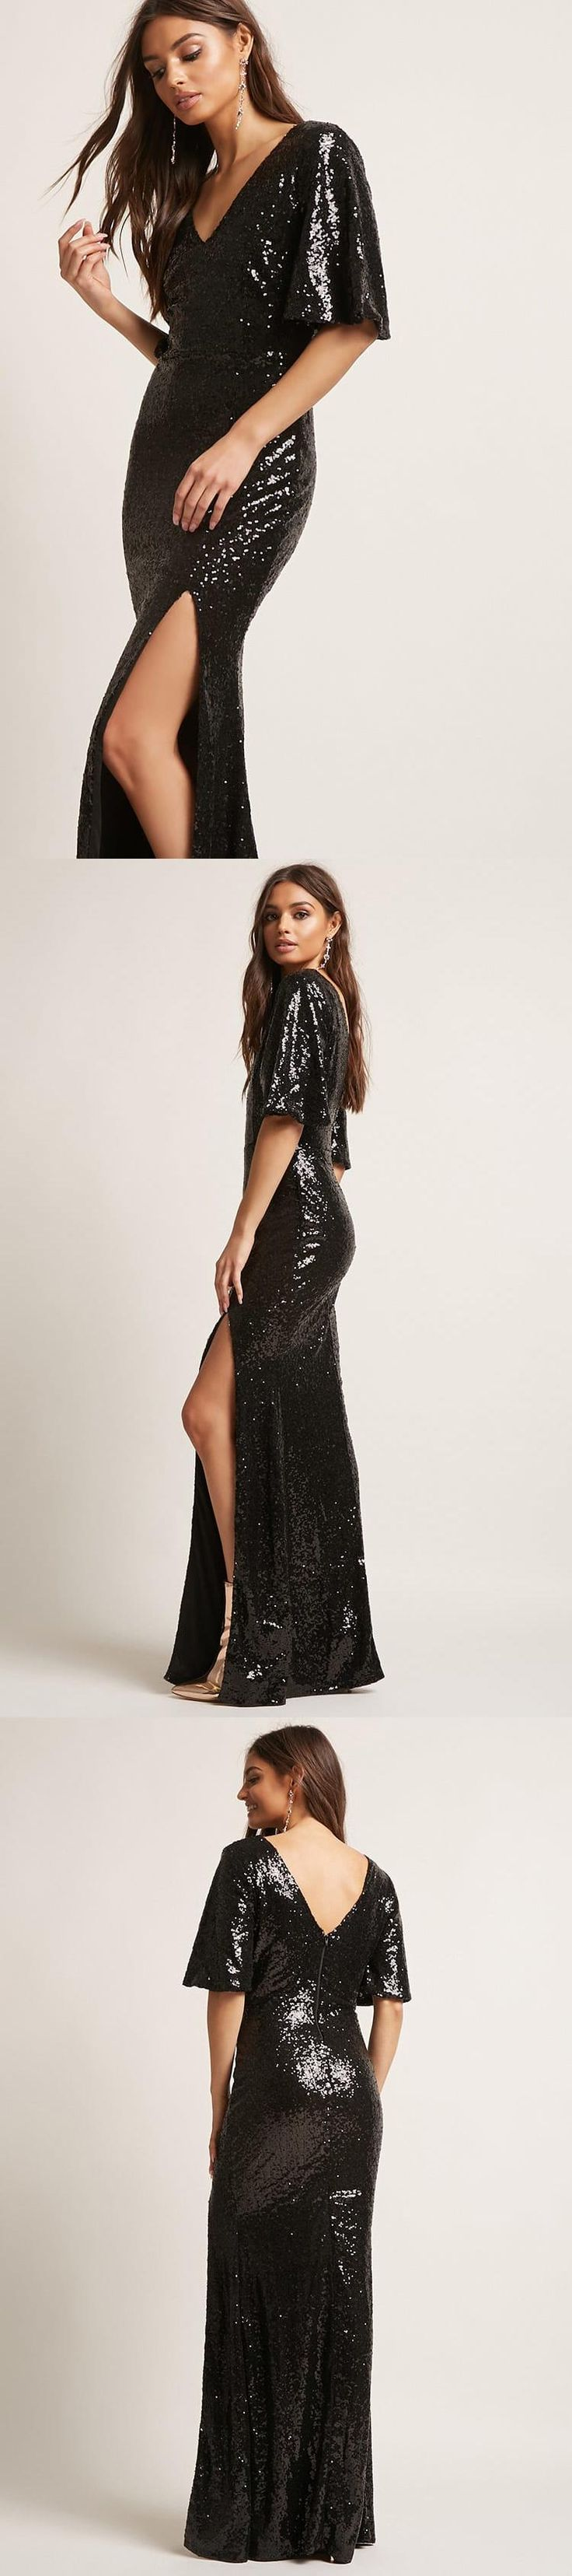 Sequin Bell-Sleeve Maxi Dress // 58.00 USD // Forever 21